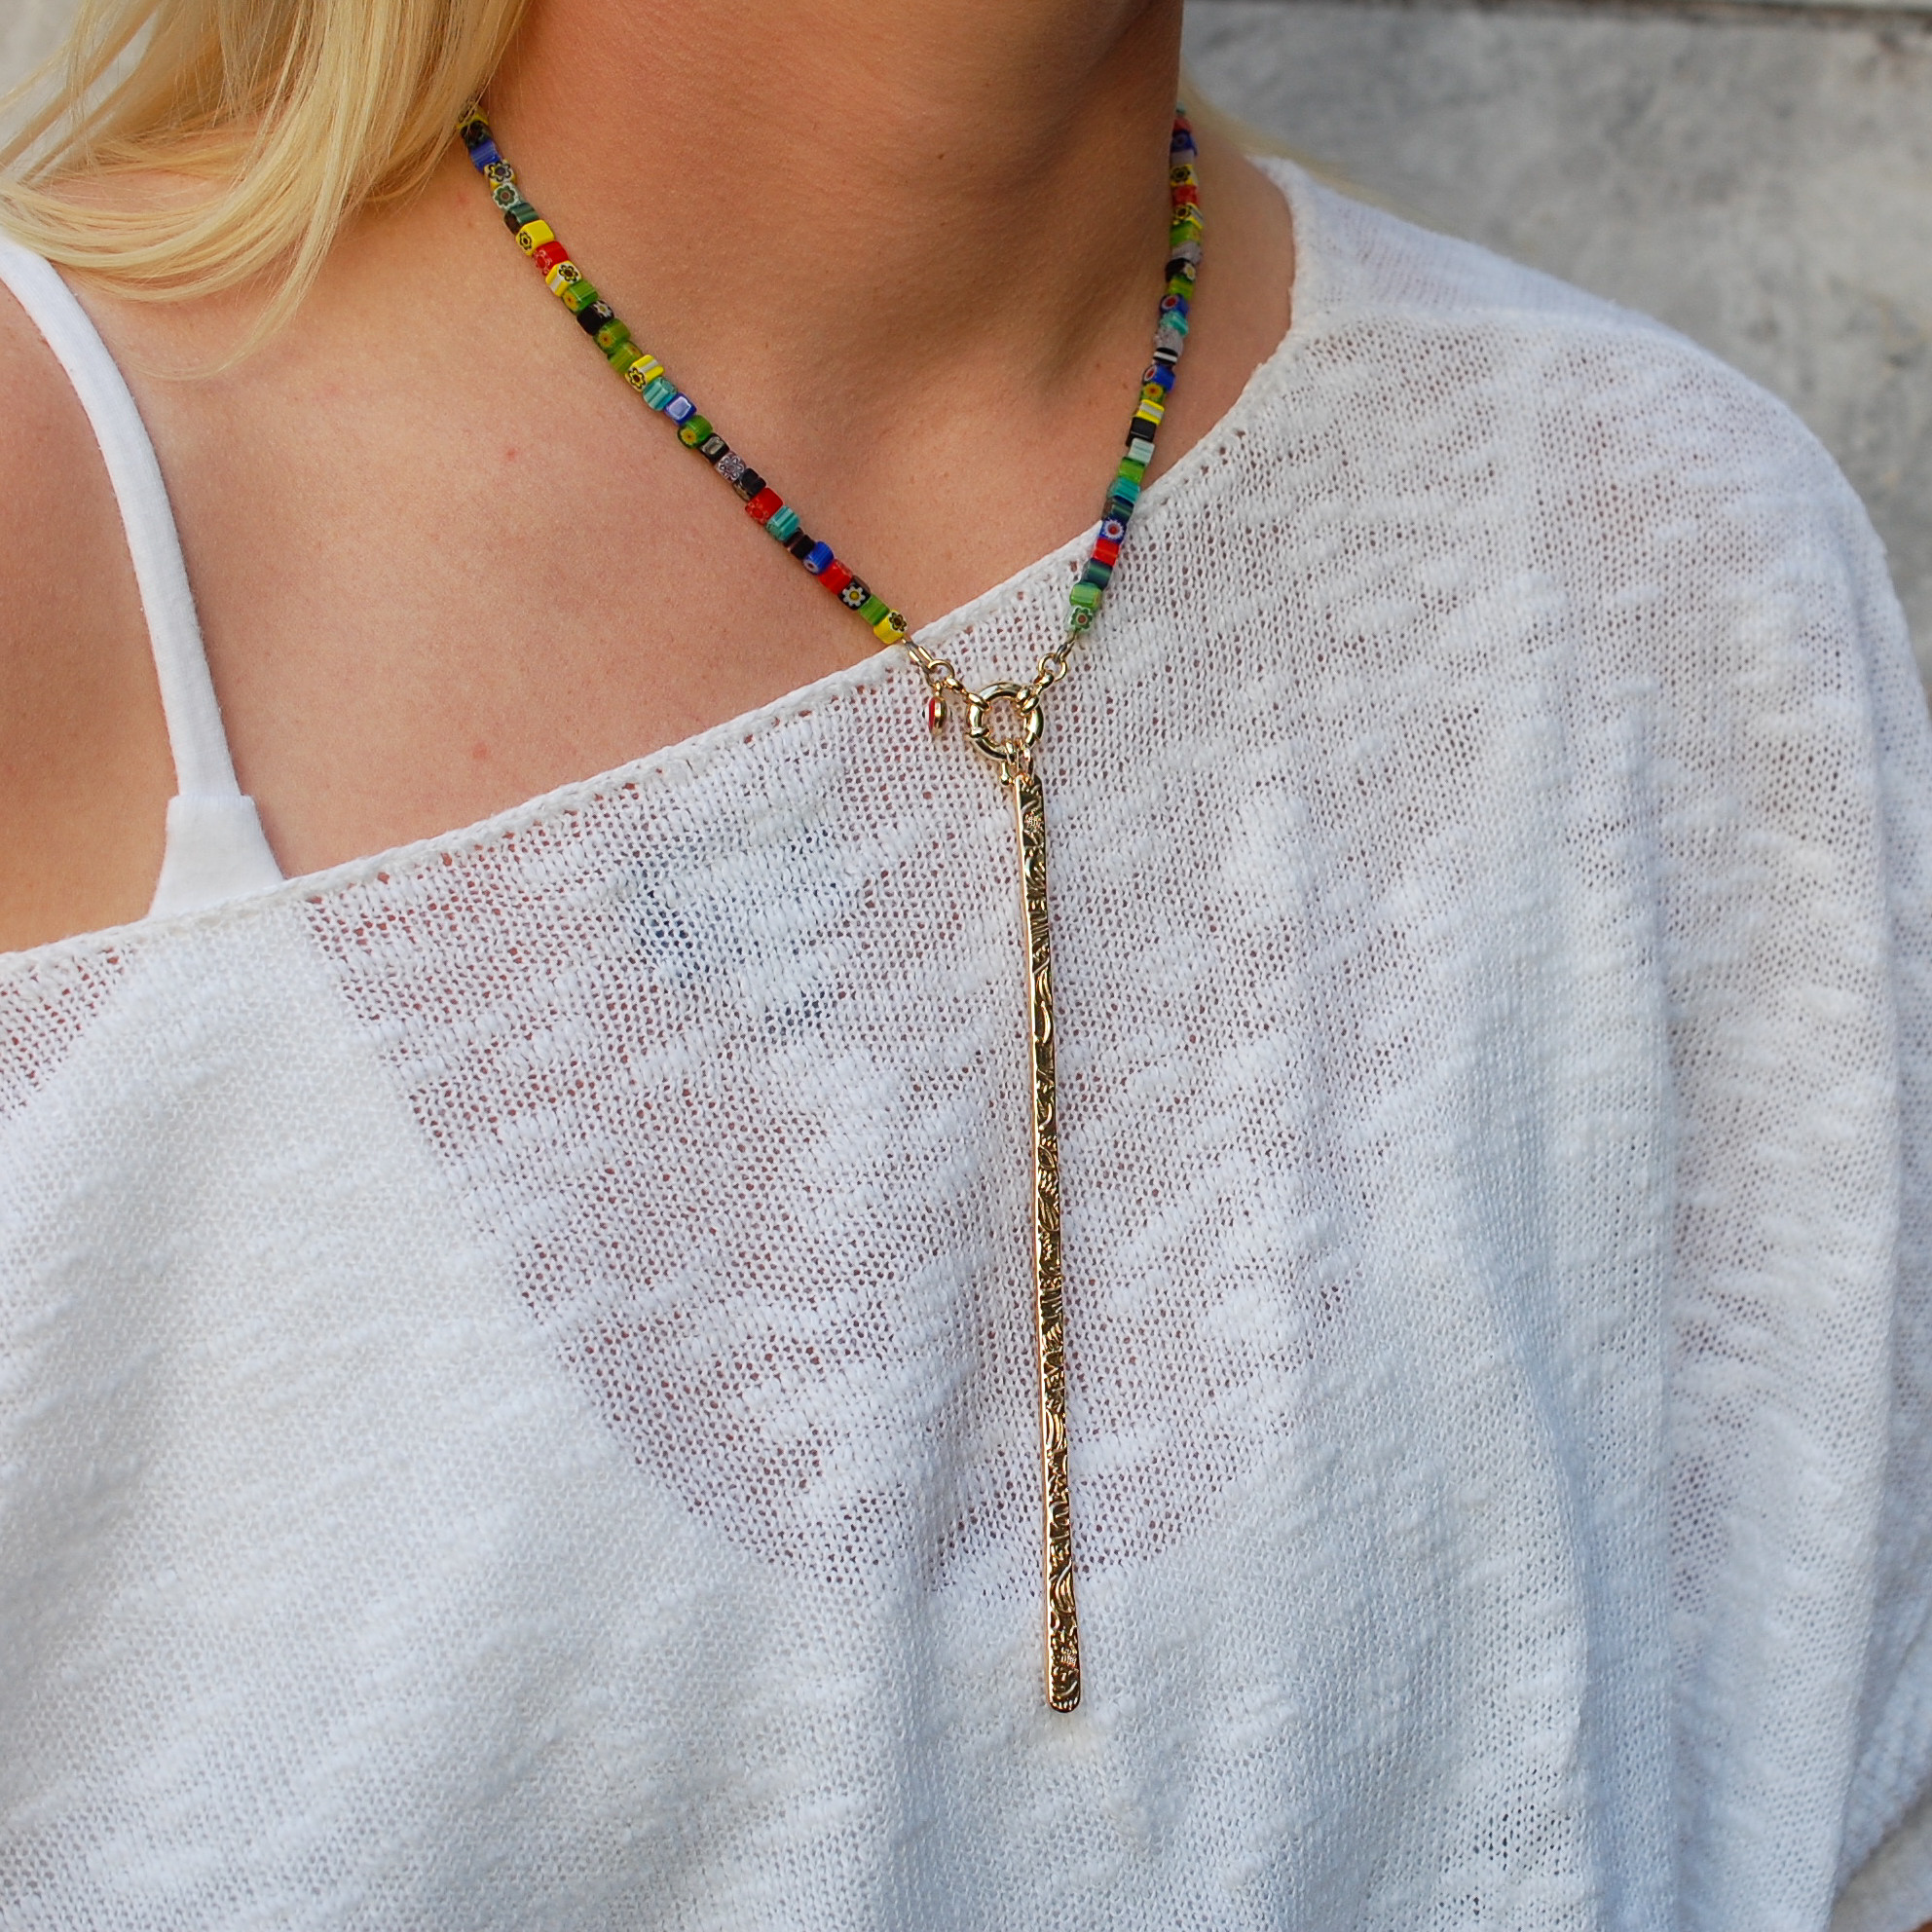 Rainbow Connection Necklace